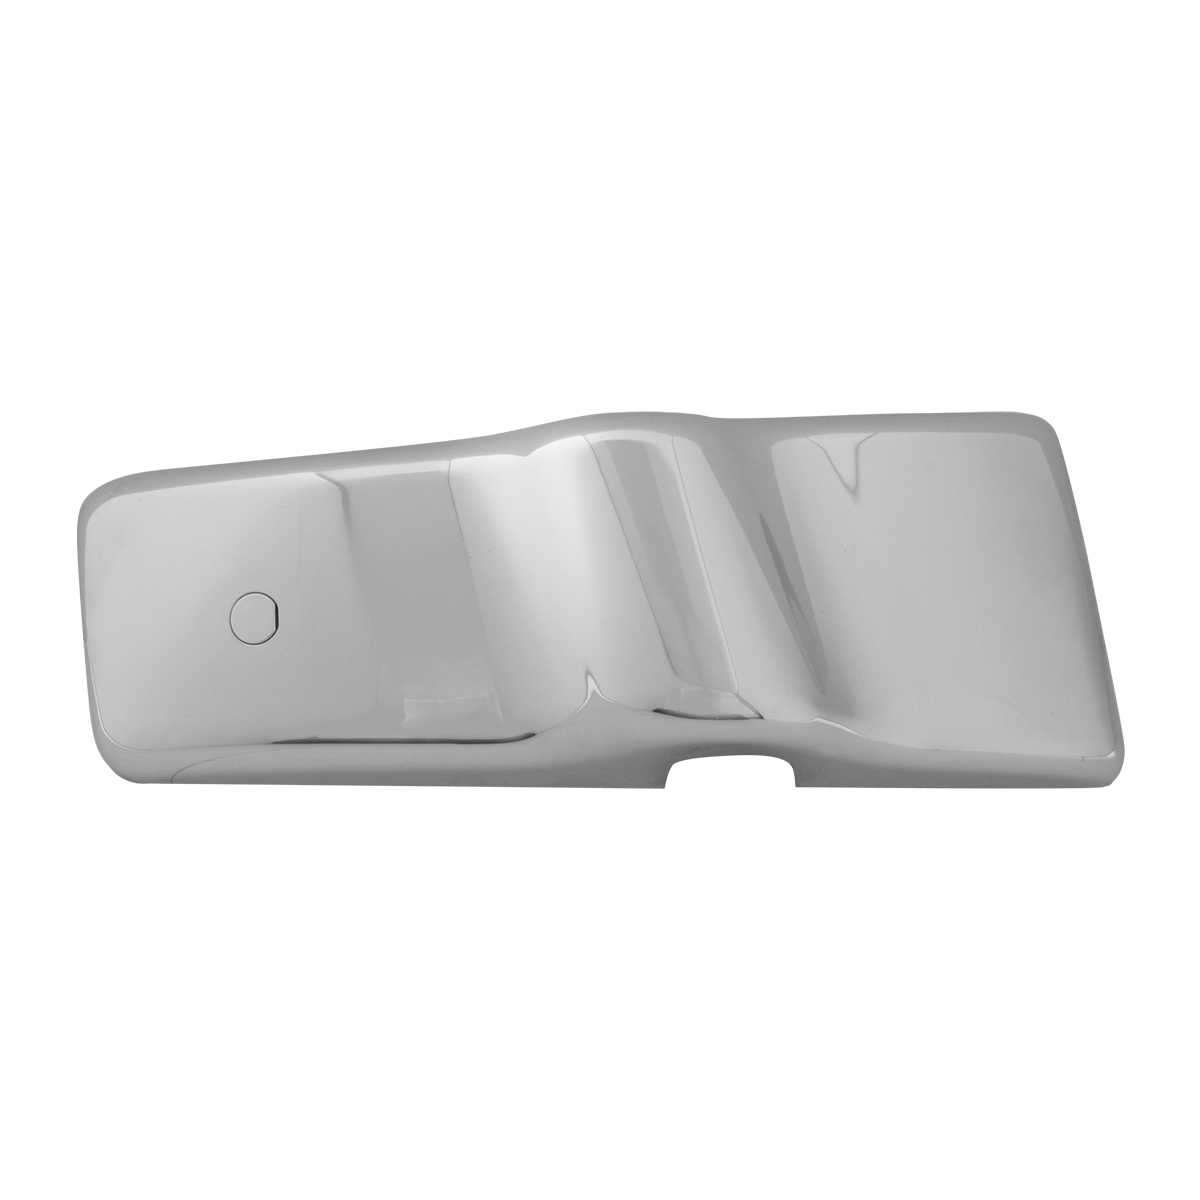 67813 Chrome Plastic Exterior Door Mirror Bracket Cover for Freightliner